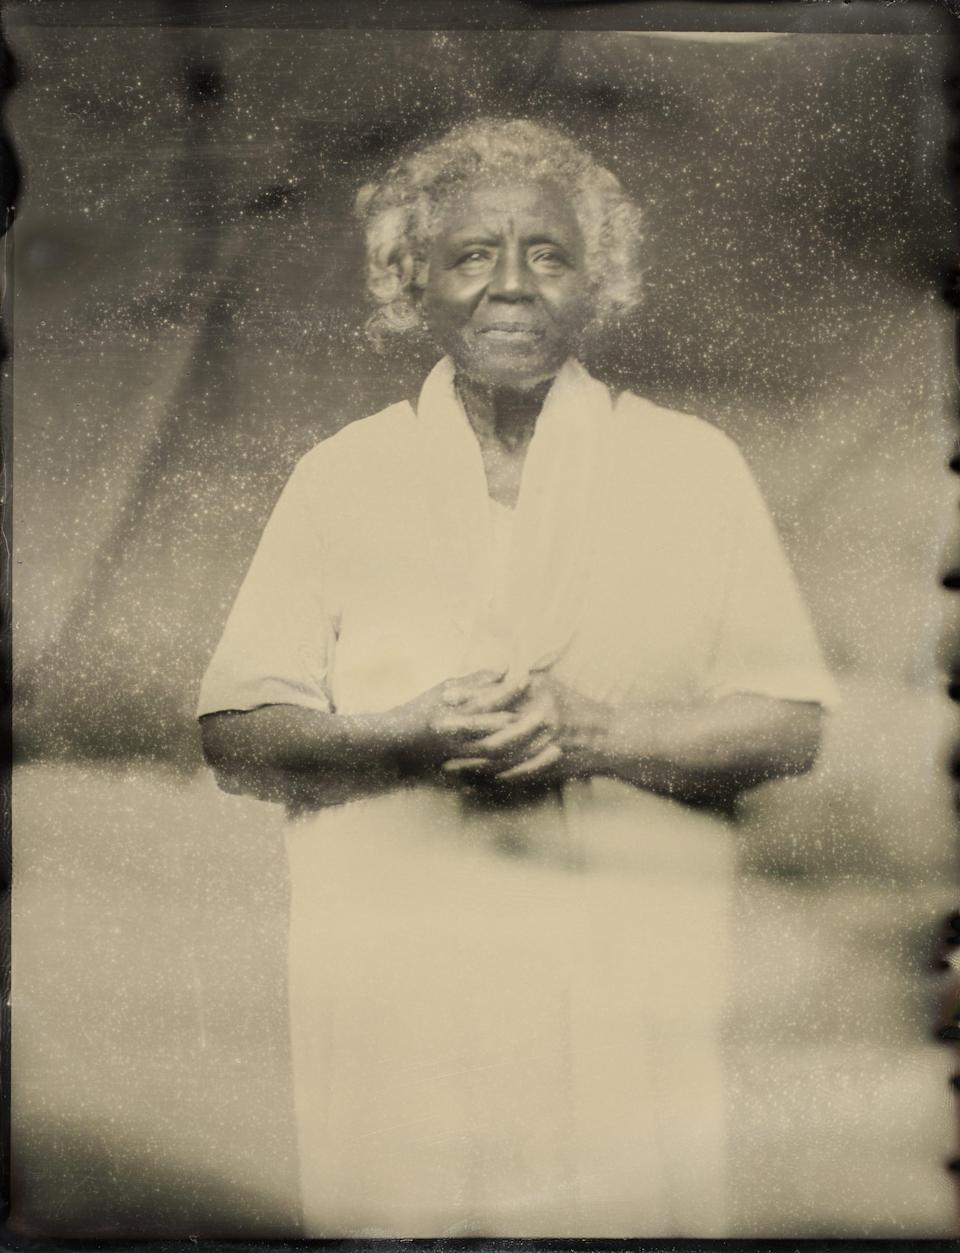 Peggy Mills Warner, great-great-great-great-great-great grandaughter of Betty Toler, a founding settler of Eagle Township in the Gist settlement, founded by formerly enslaved people from the Gist plantation in Virginia.